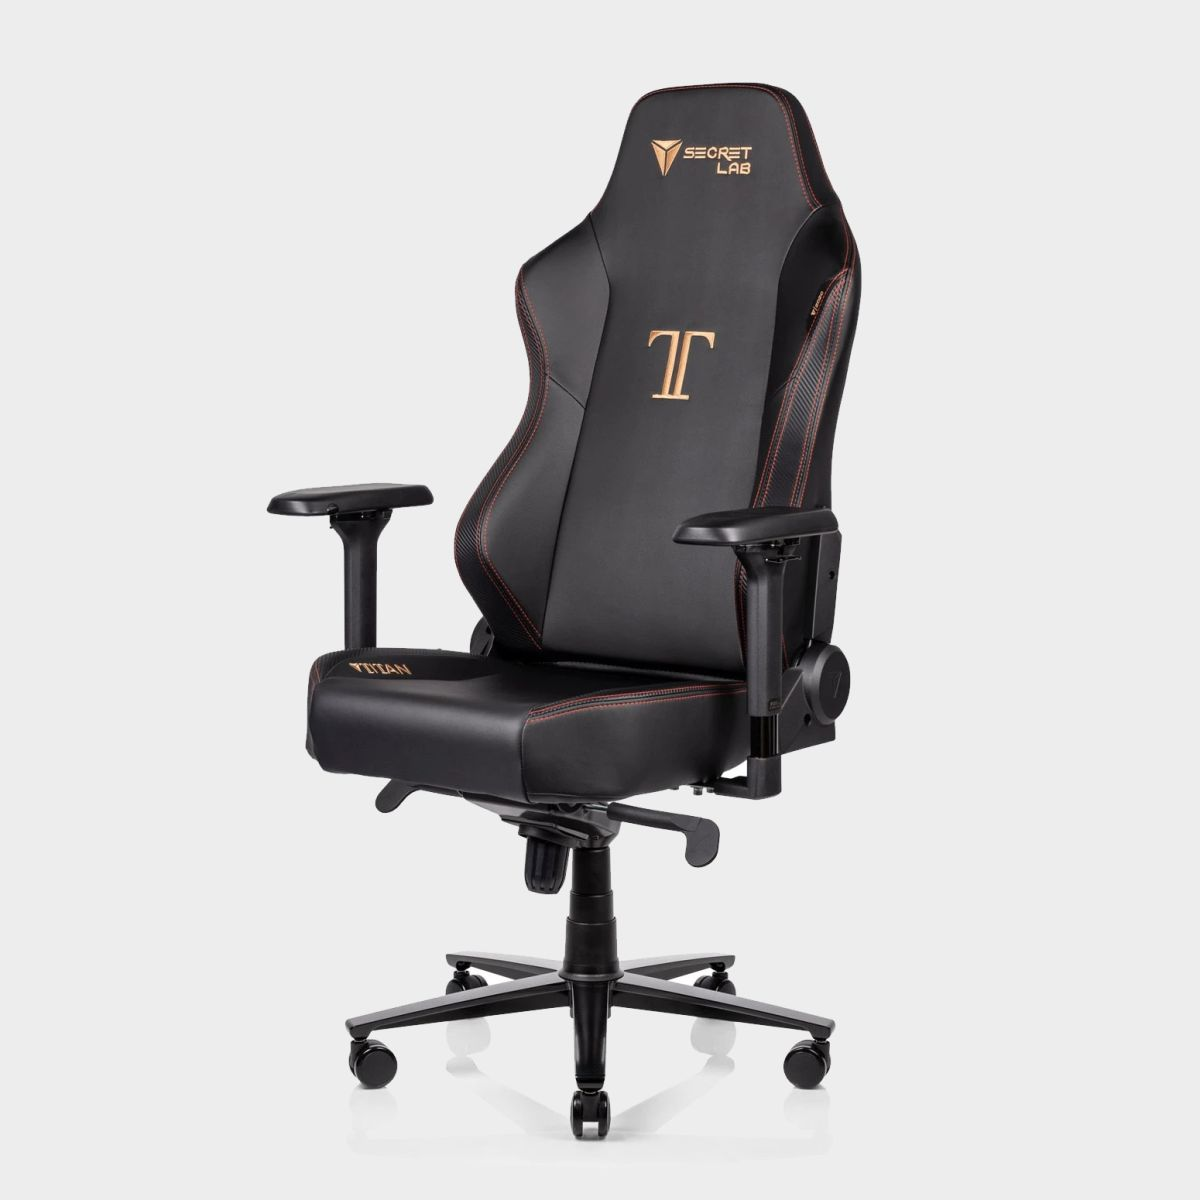 Cyber Monday Gaming Chair Deals The Cushiest Discounts Pc Gamer Gaming chair bonded leather back and seat cyber monday gaming chair deals the